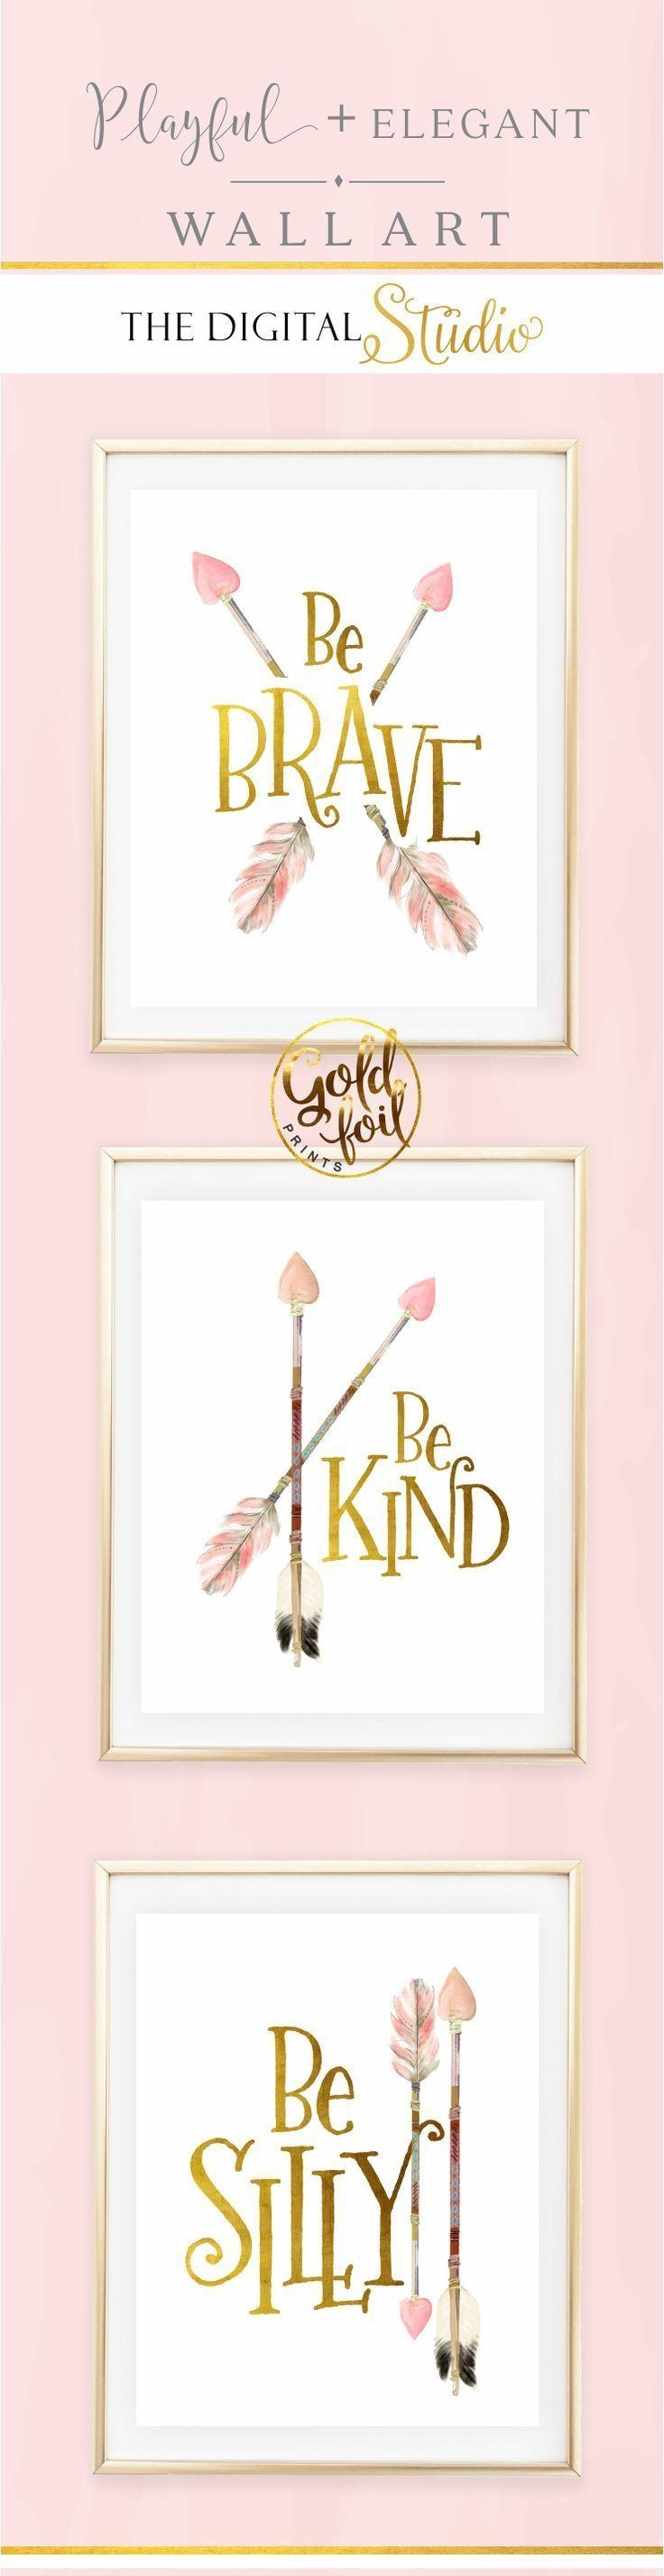 Best 25+ Pink Wall Art Ideas On Pinterest | Pink Printed Art Pertaining To Pink And Grey Wall Art (Image 6 of 20)